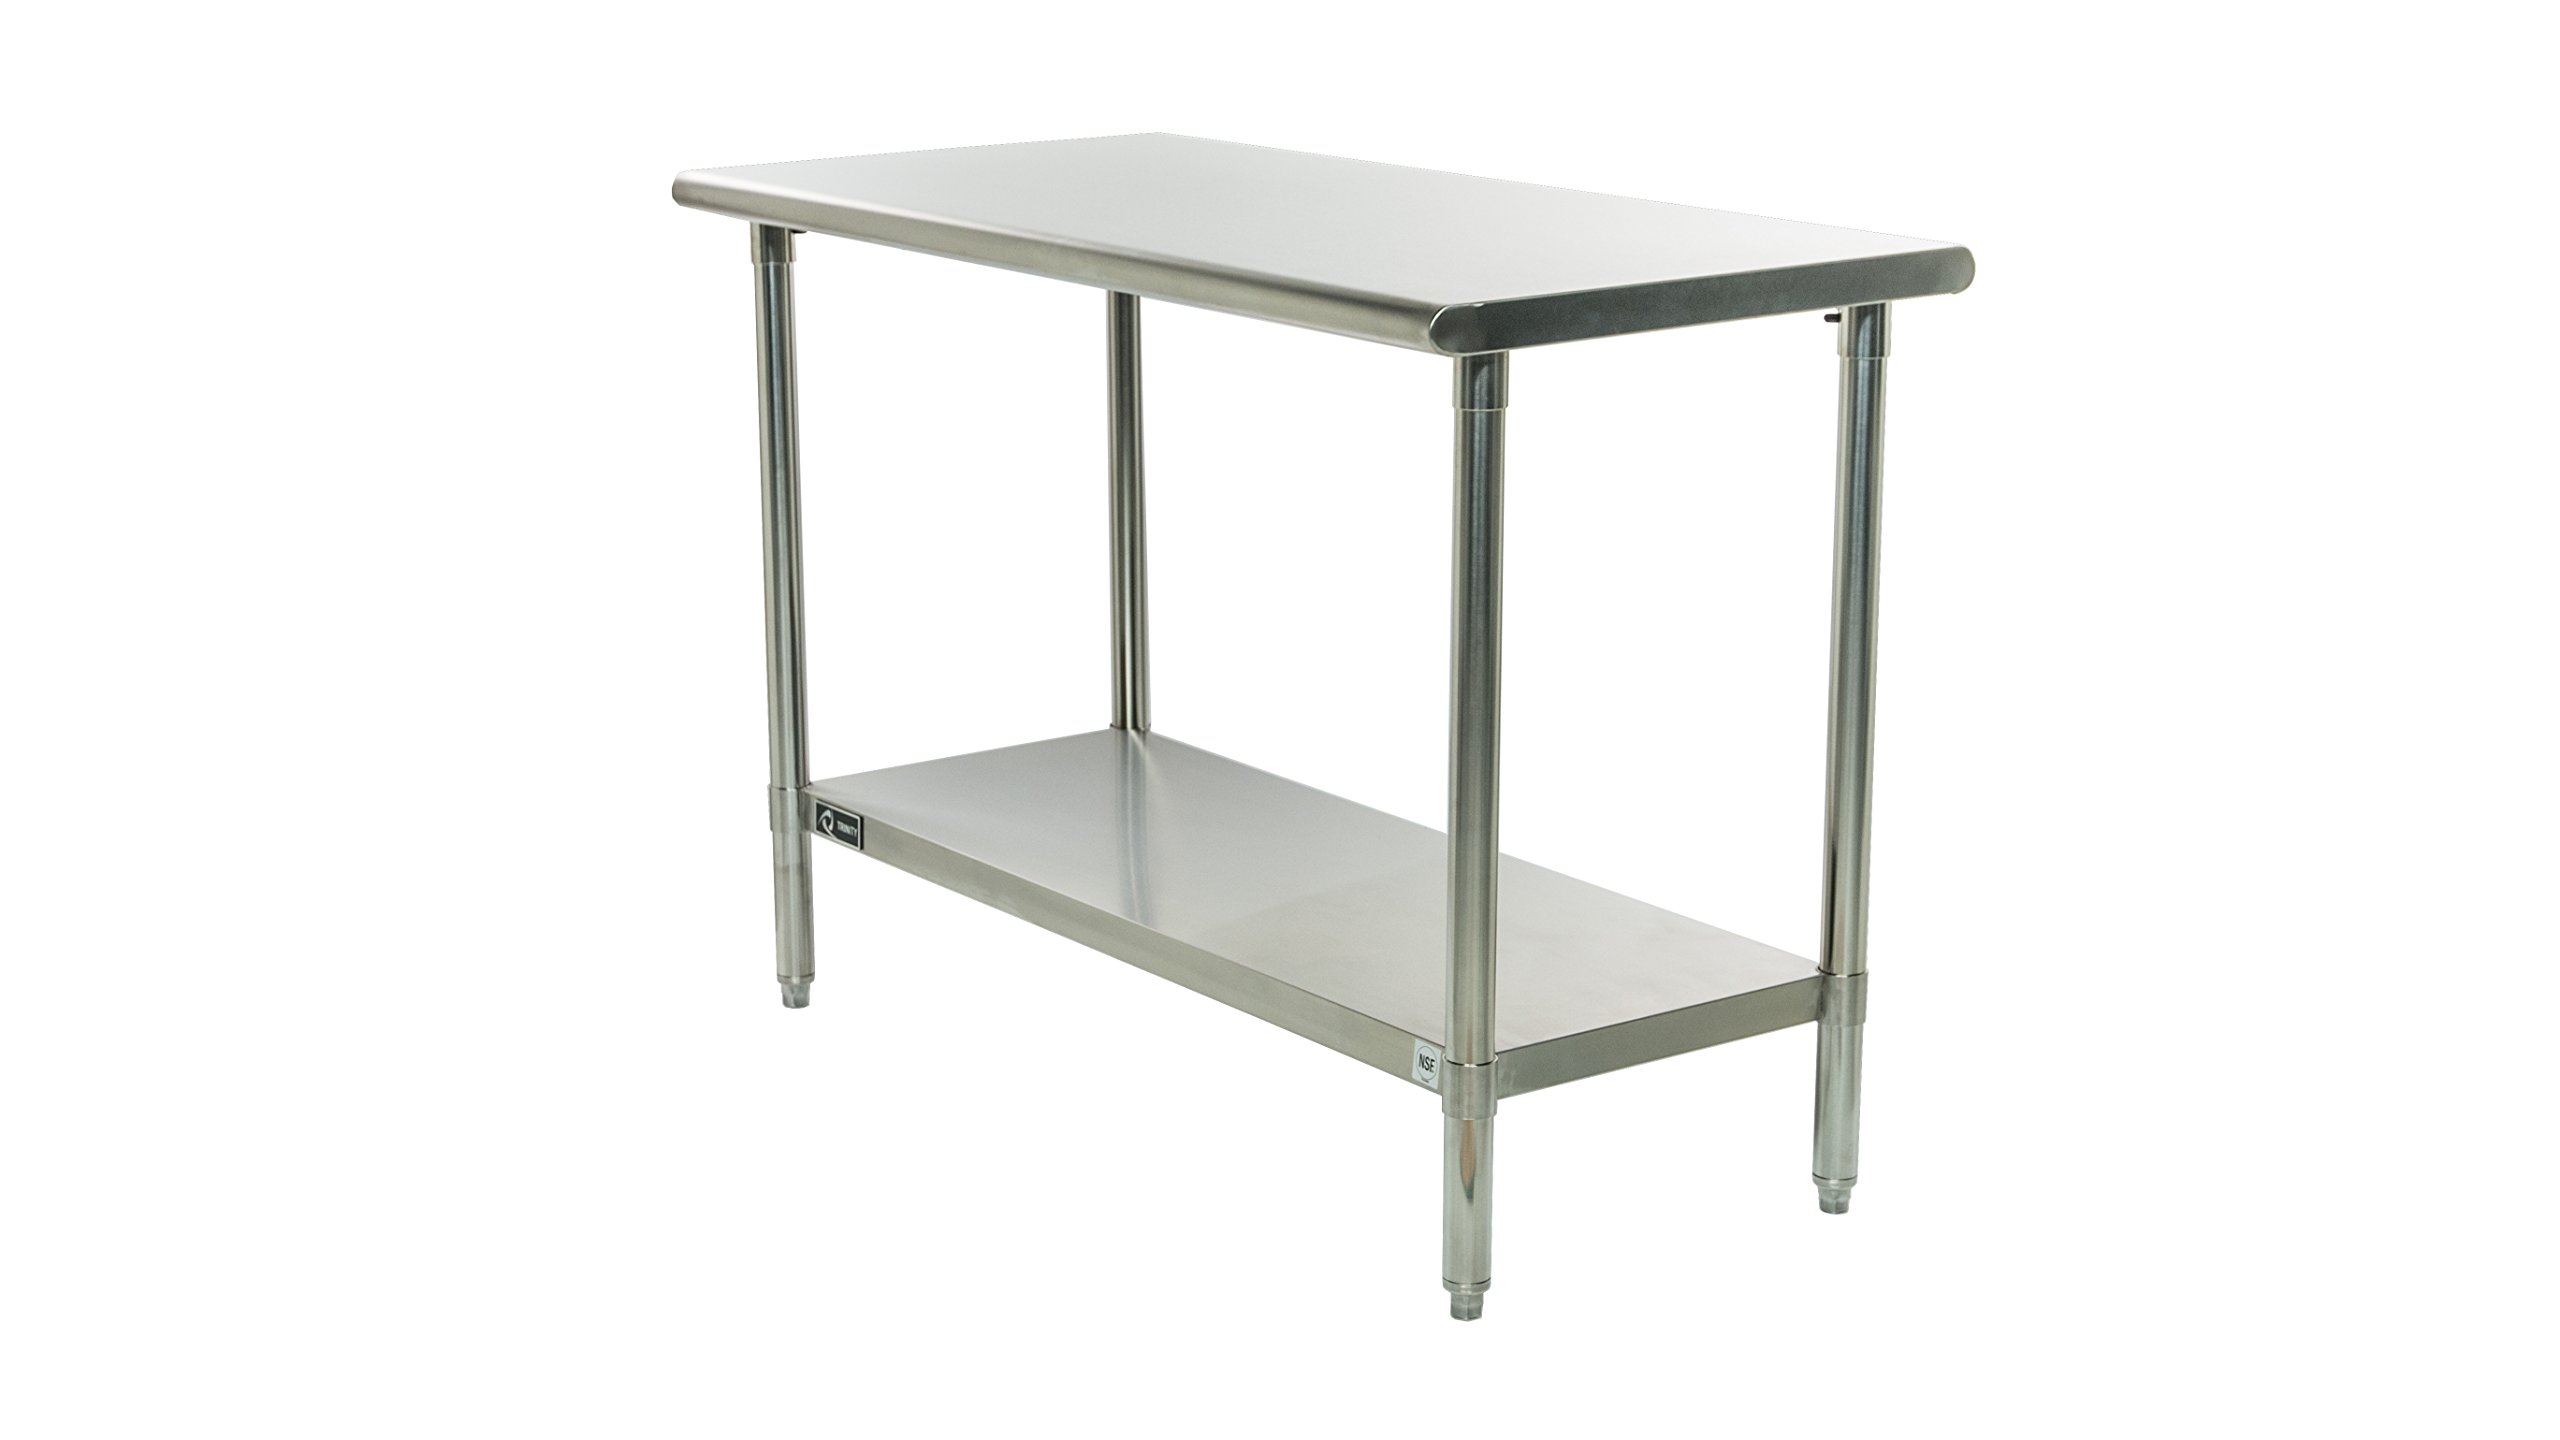 TRINITY EcoStorage NSF Stainless Steel Table, 48-Inch by Trinity (Image #6)